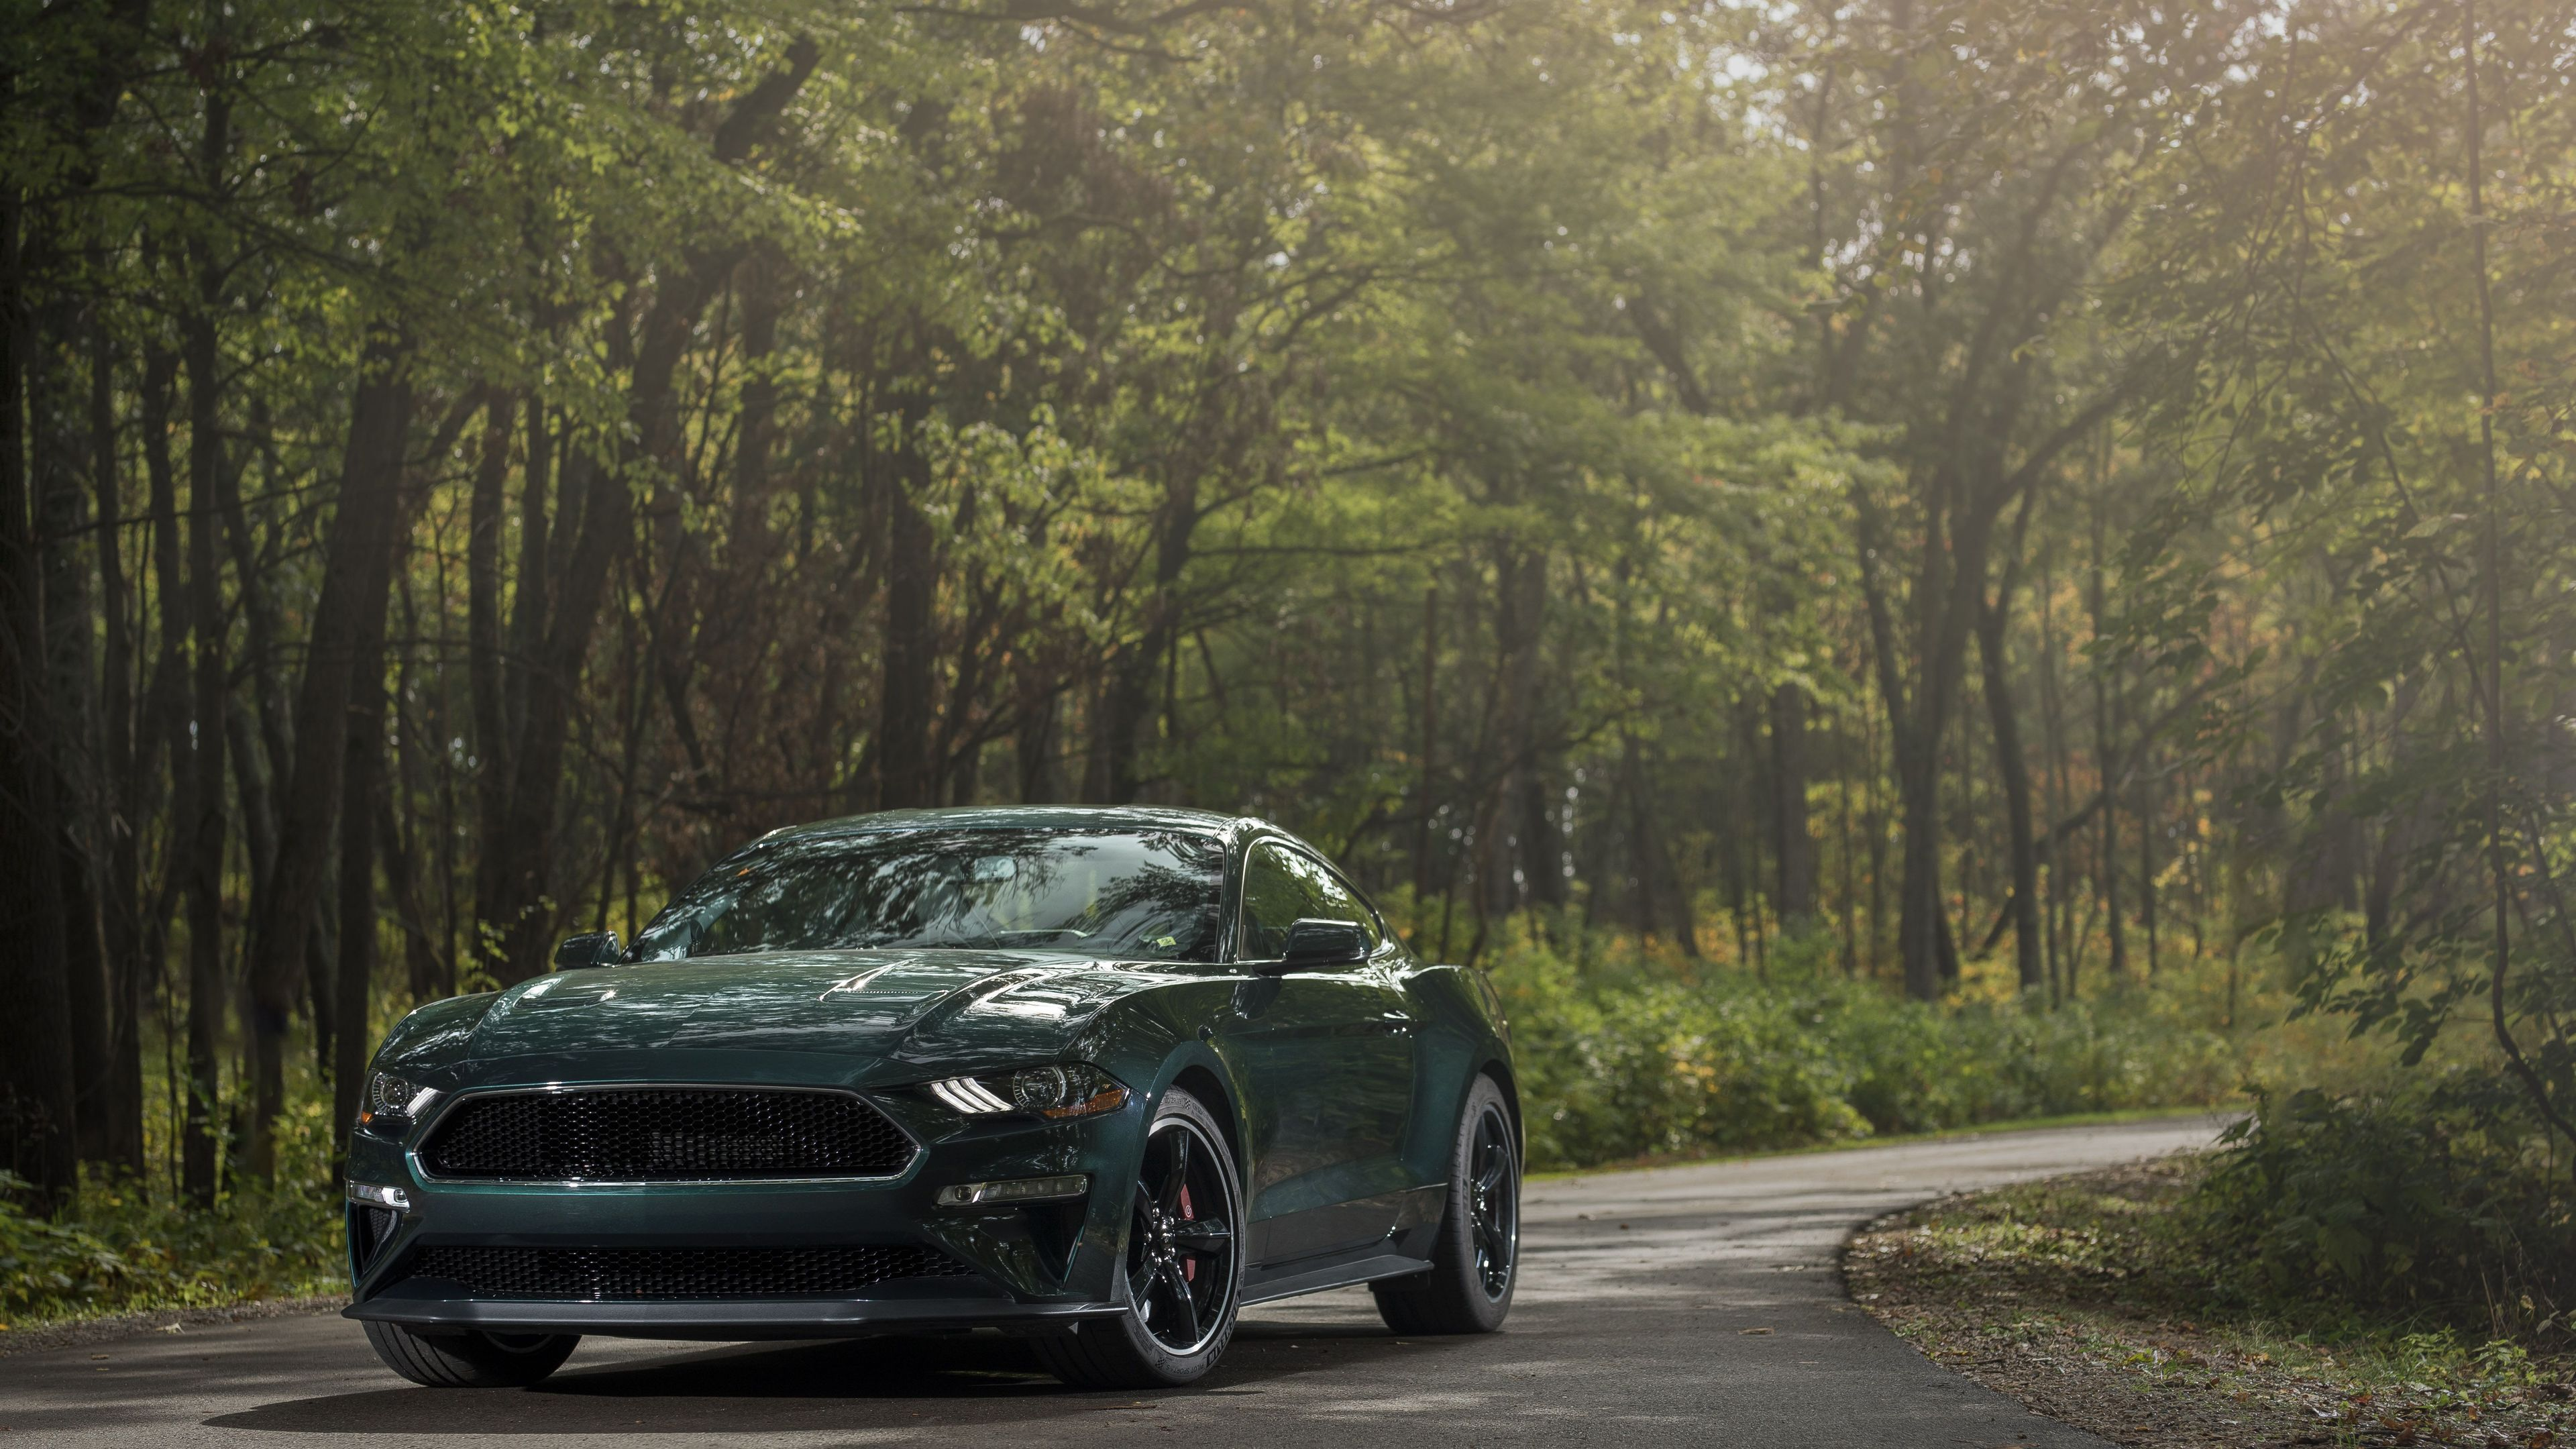 2019 ford mustang bullitt front 1559764514 - 2019 Ford Mustang Bullitt Front - mustang wallpapers, hd-wallpapers, ford wallpapers, ford mustang wallpapers, 4k-wallpapers, 2018 cars wallpapers